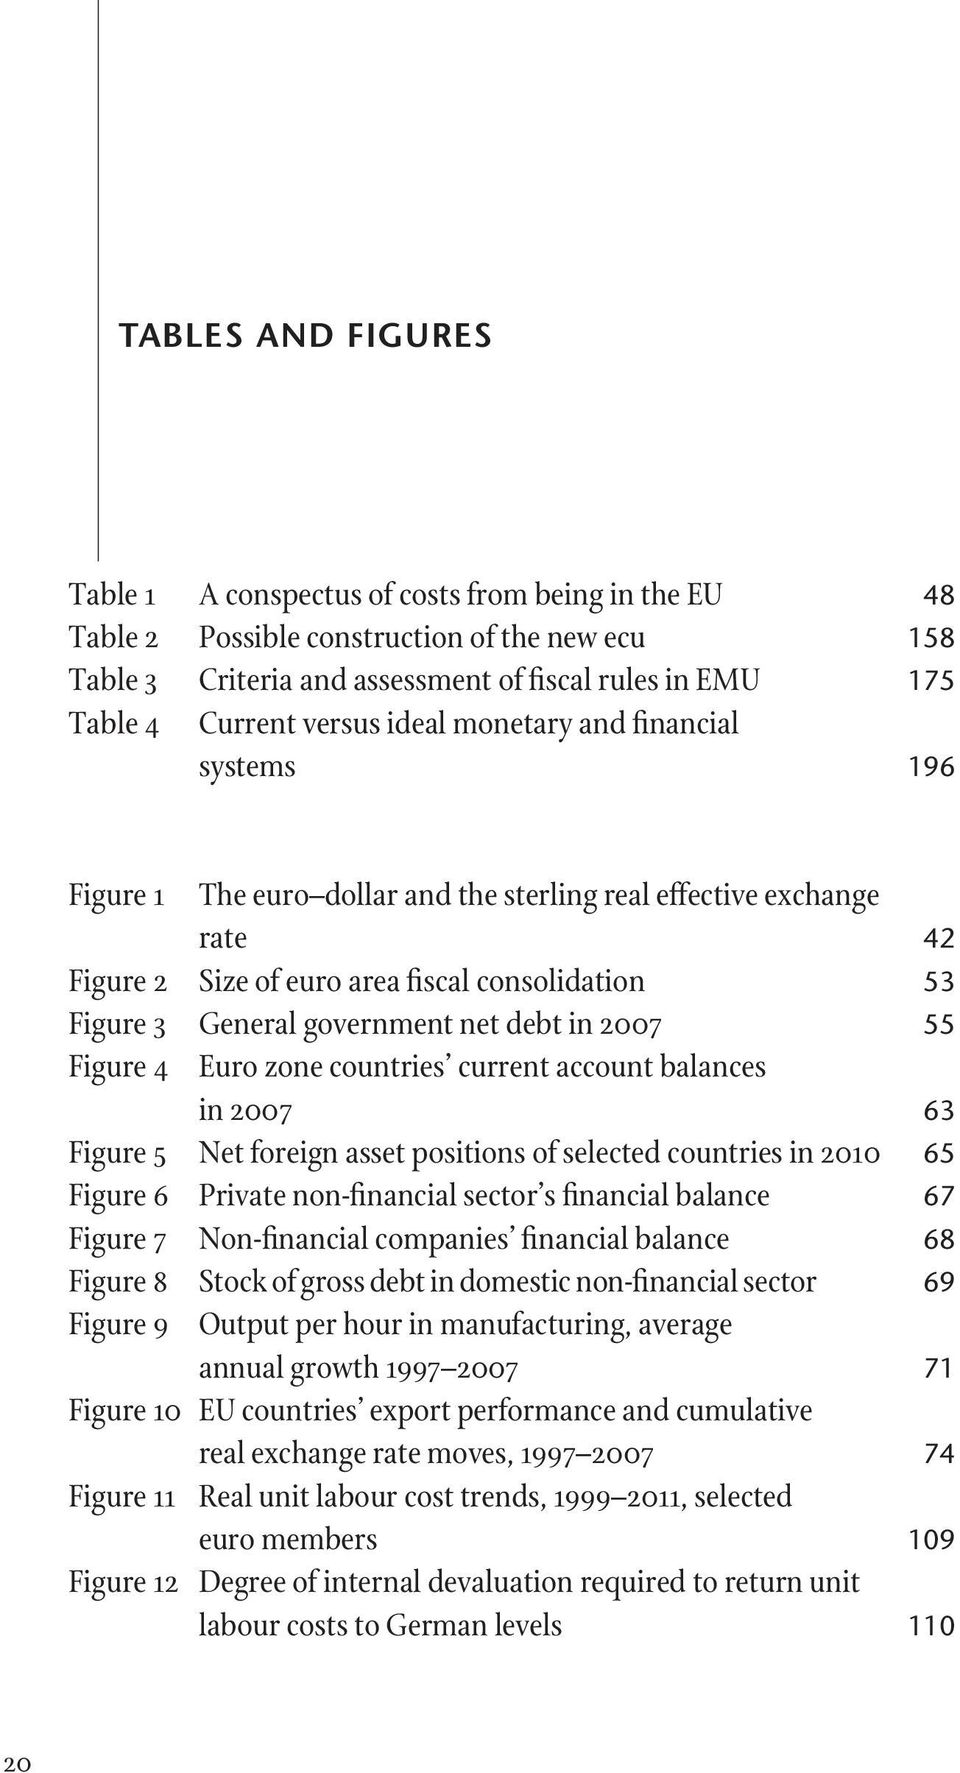 government net debt in 2007 55 Figure 4 Euro zone countries current account balances in 2007 63 Figure 5 Net foreign asset positions of selected countries in 2010 65 Figure 6 Private non-financial